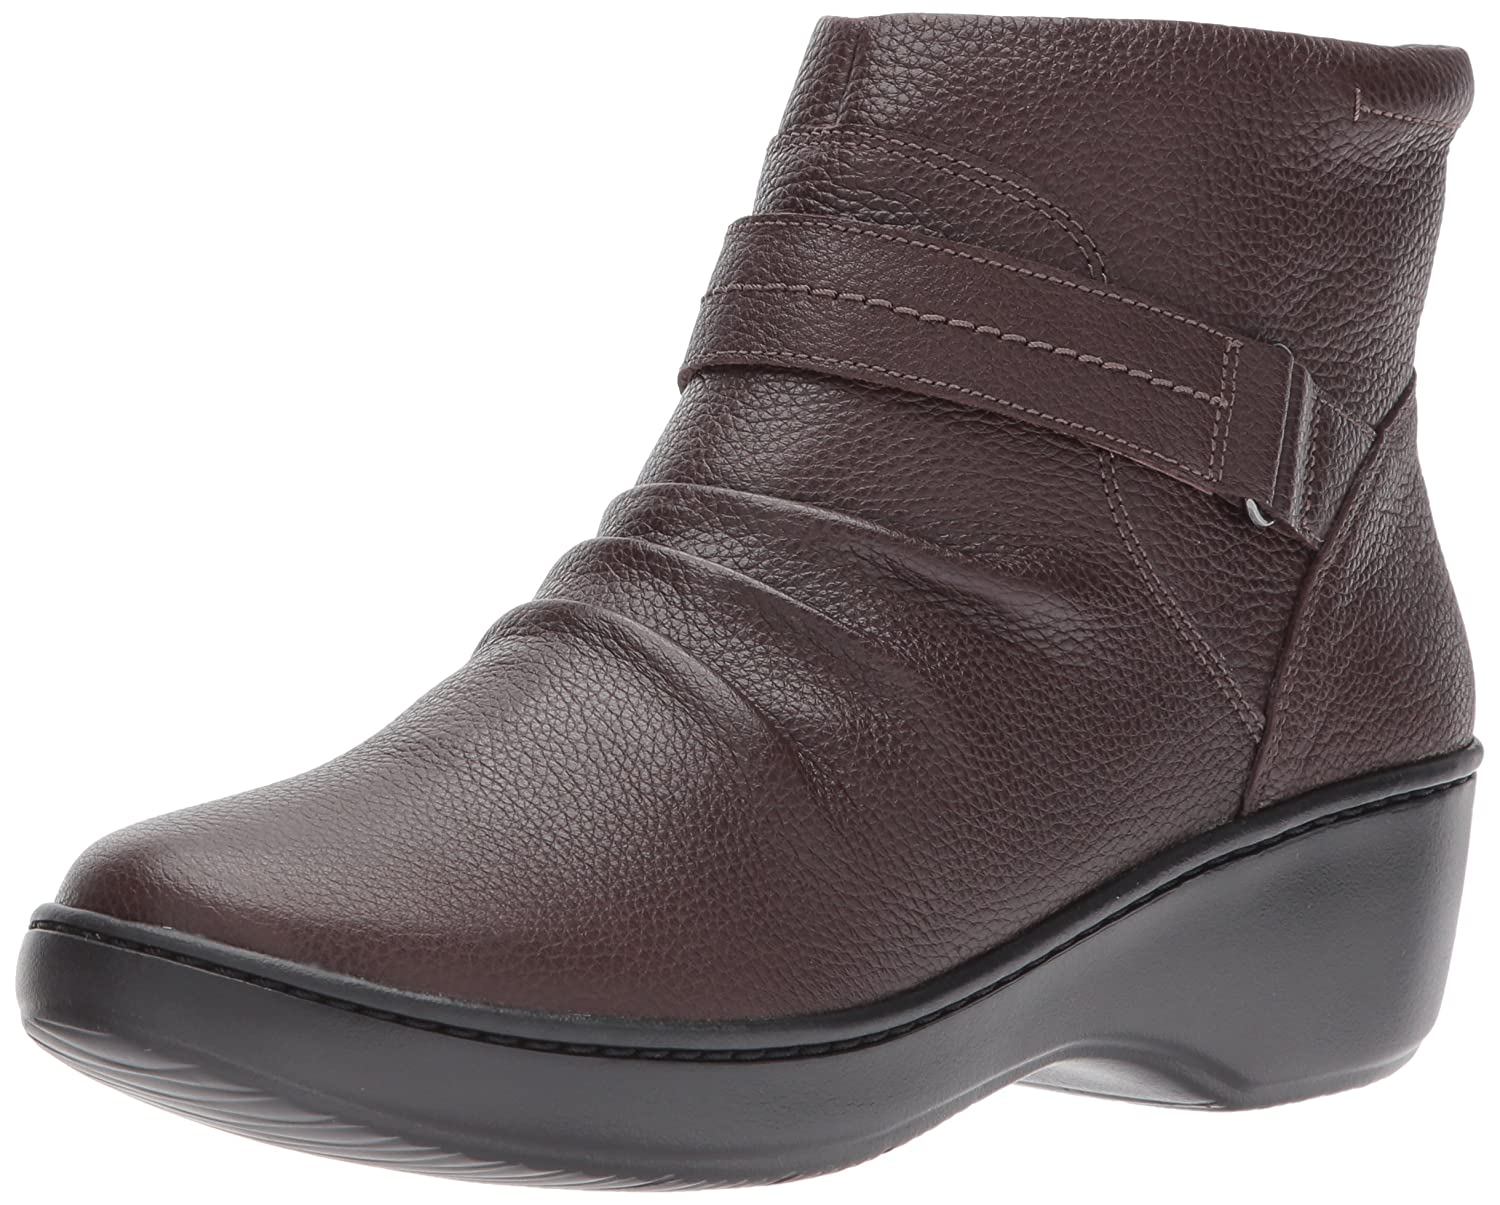 CLARKS Women's Delana Fairlee Ankle Bootie B01N2TL3TX 6 B(M) US|Dark Brown Leather